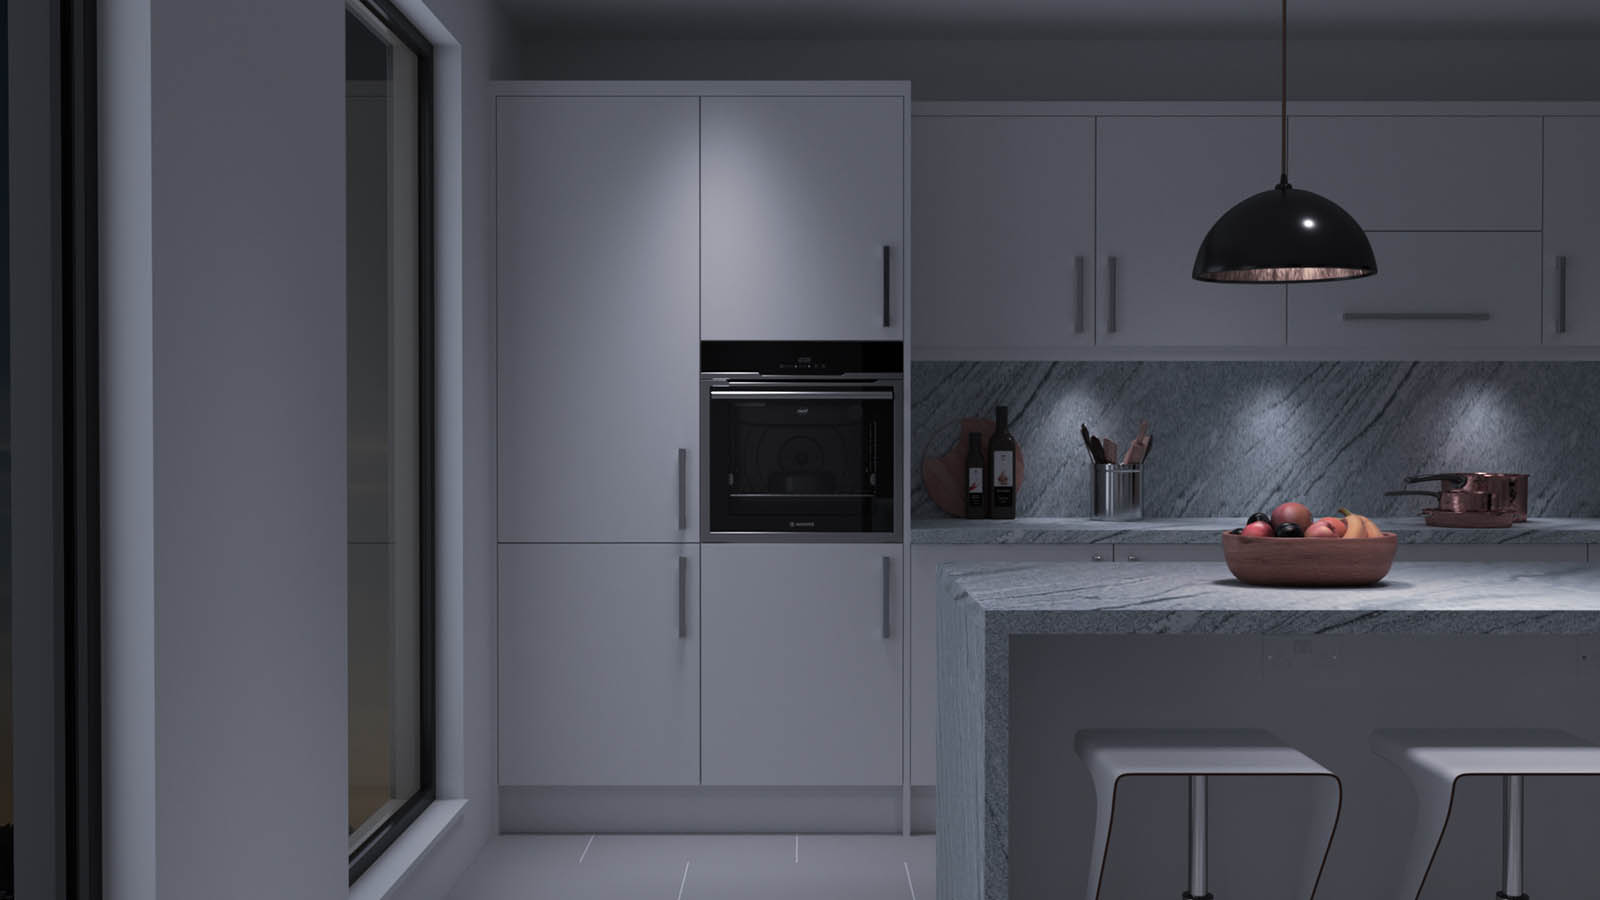 Hoover Stings CGI Animation TV Advert Oven